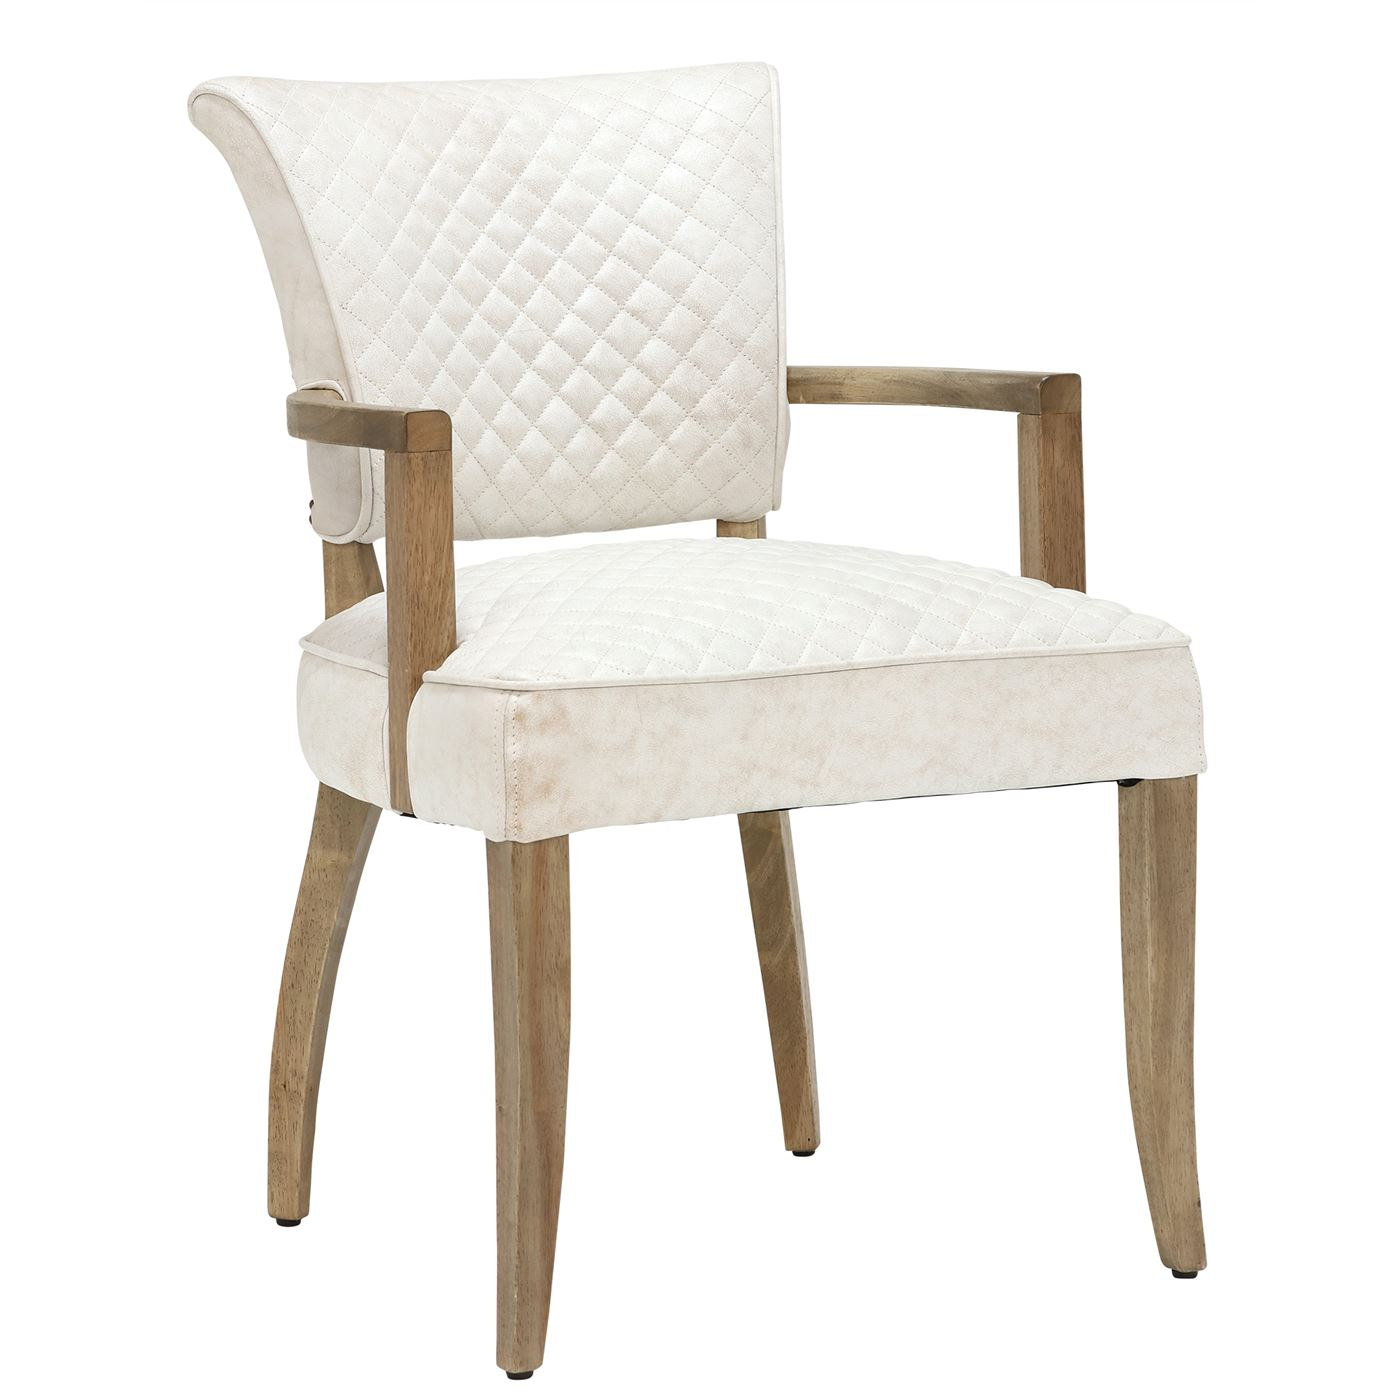 Timothy Oulton Mimi Quilted Leather Dining Chair with Arms, Vintage Bianco